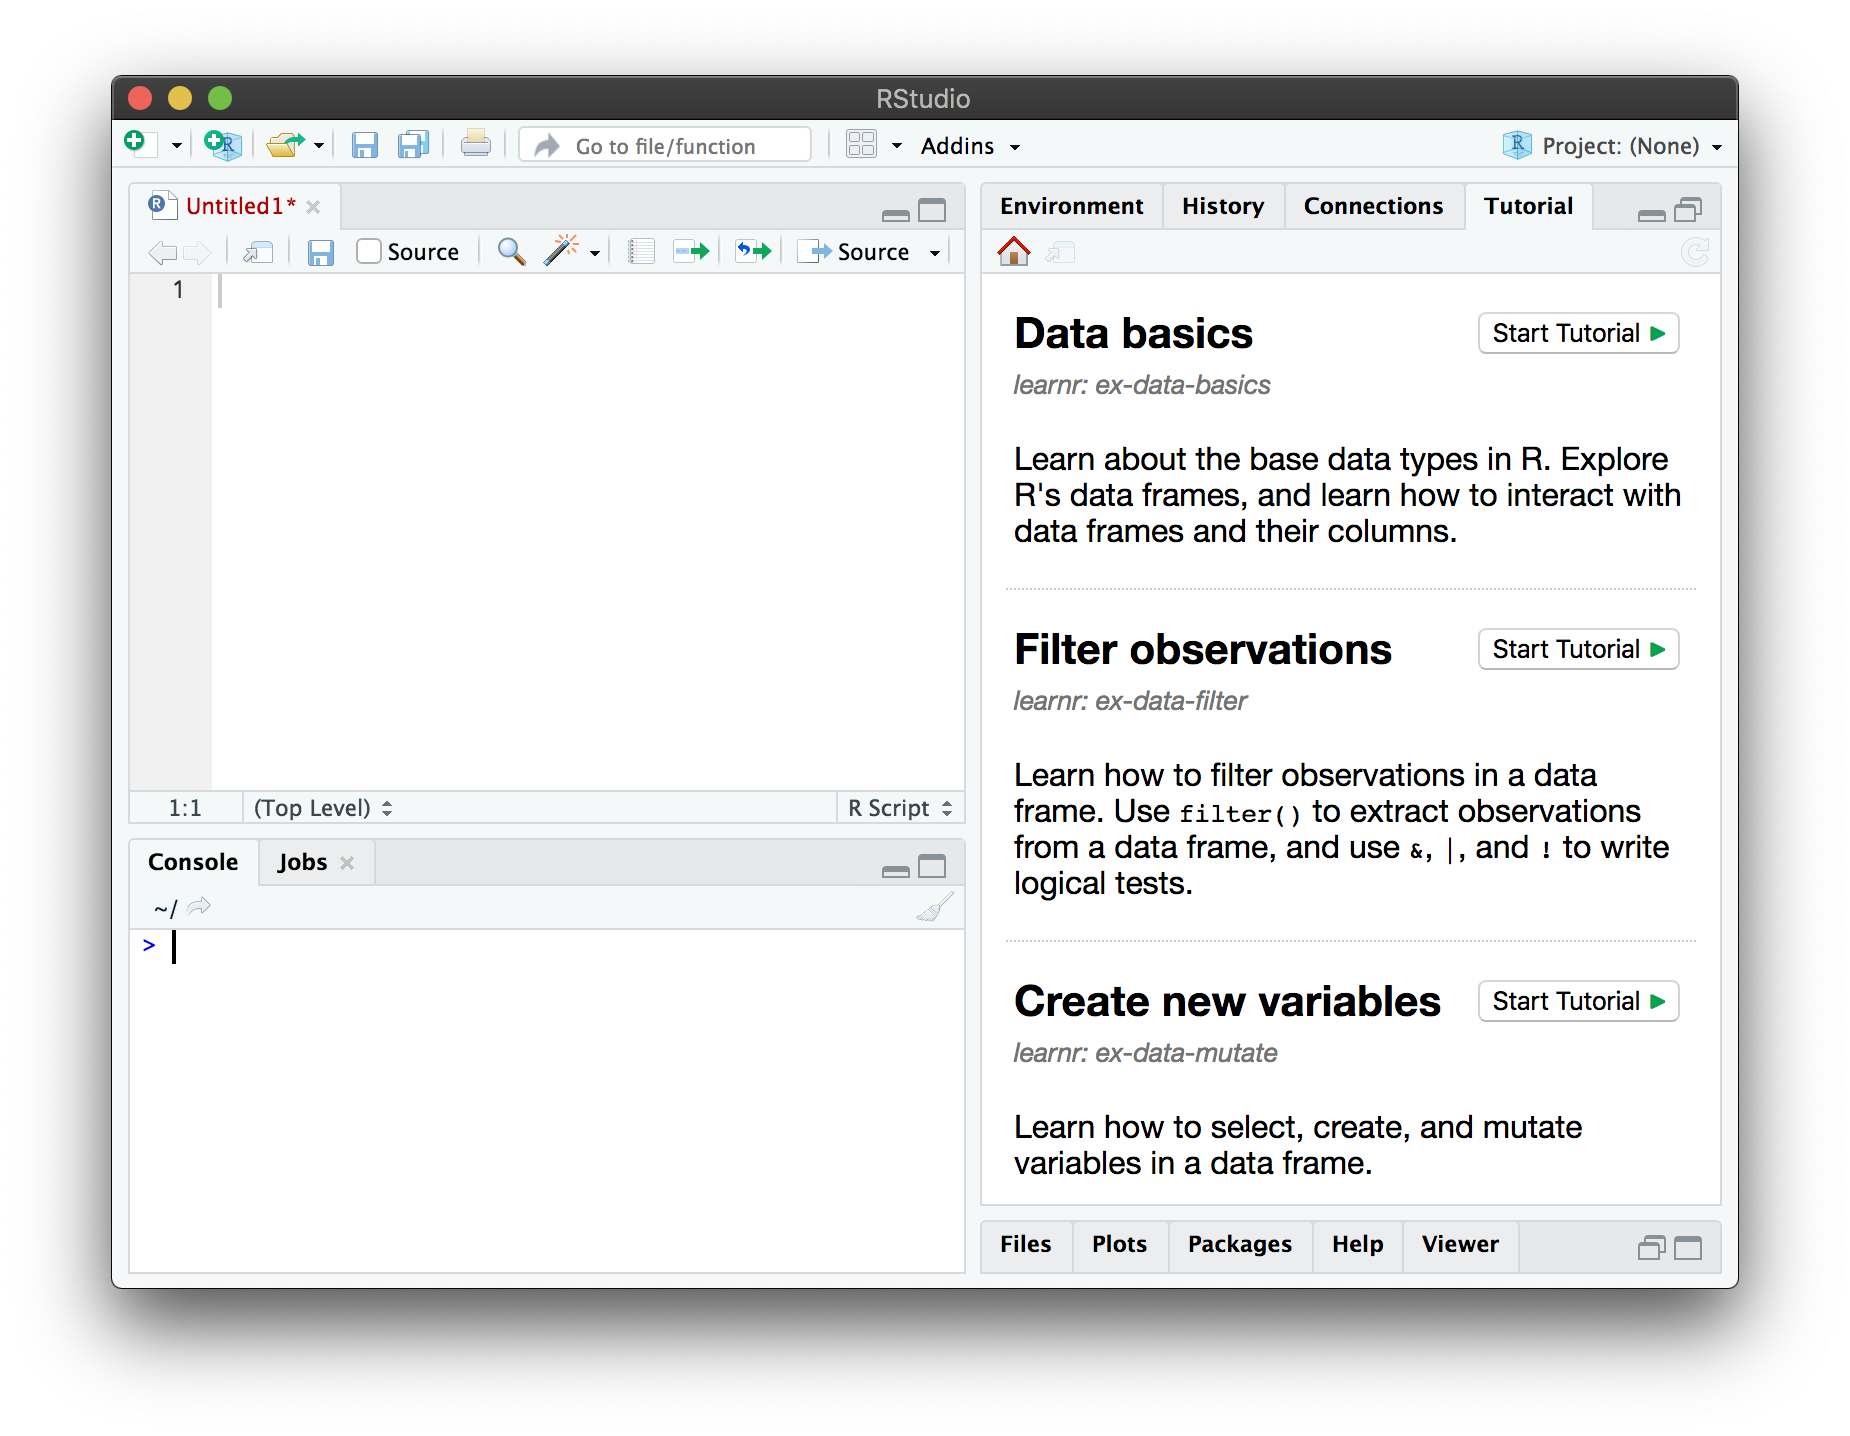 The RStudio IDE, with the Tutorial pane showing a list of available tutorials.